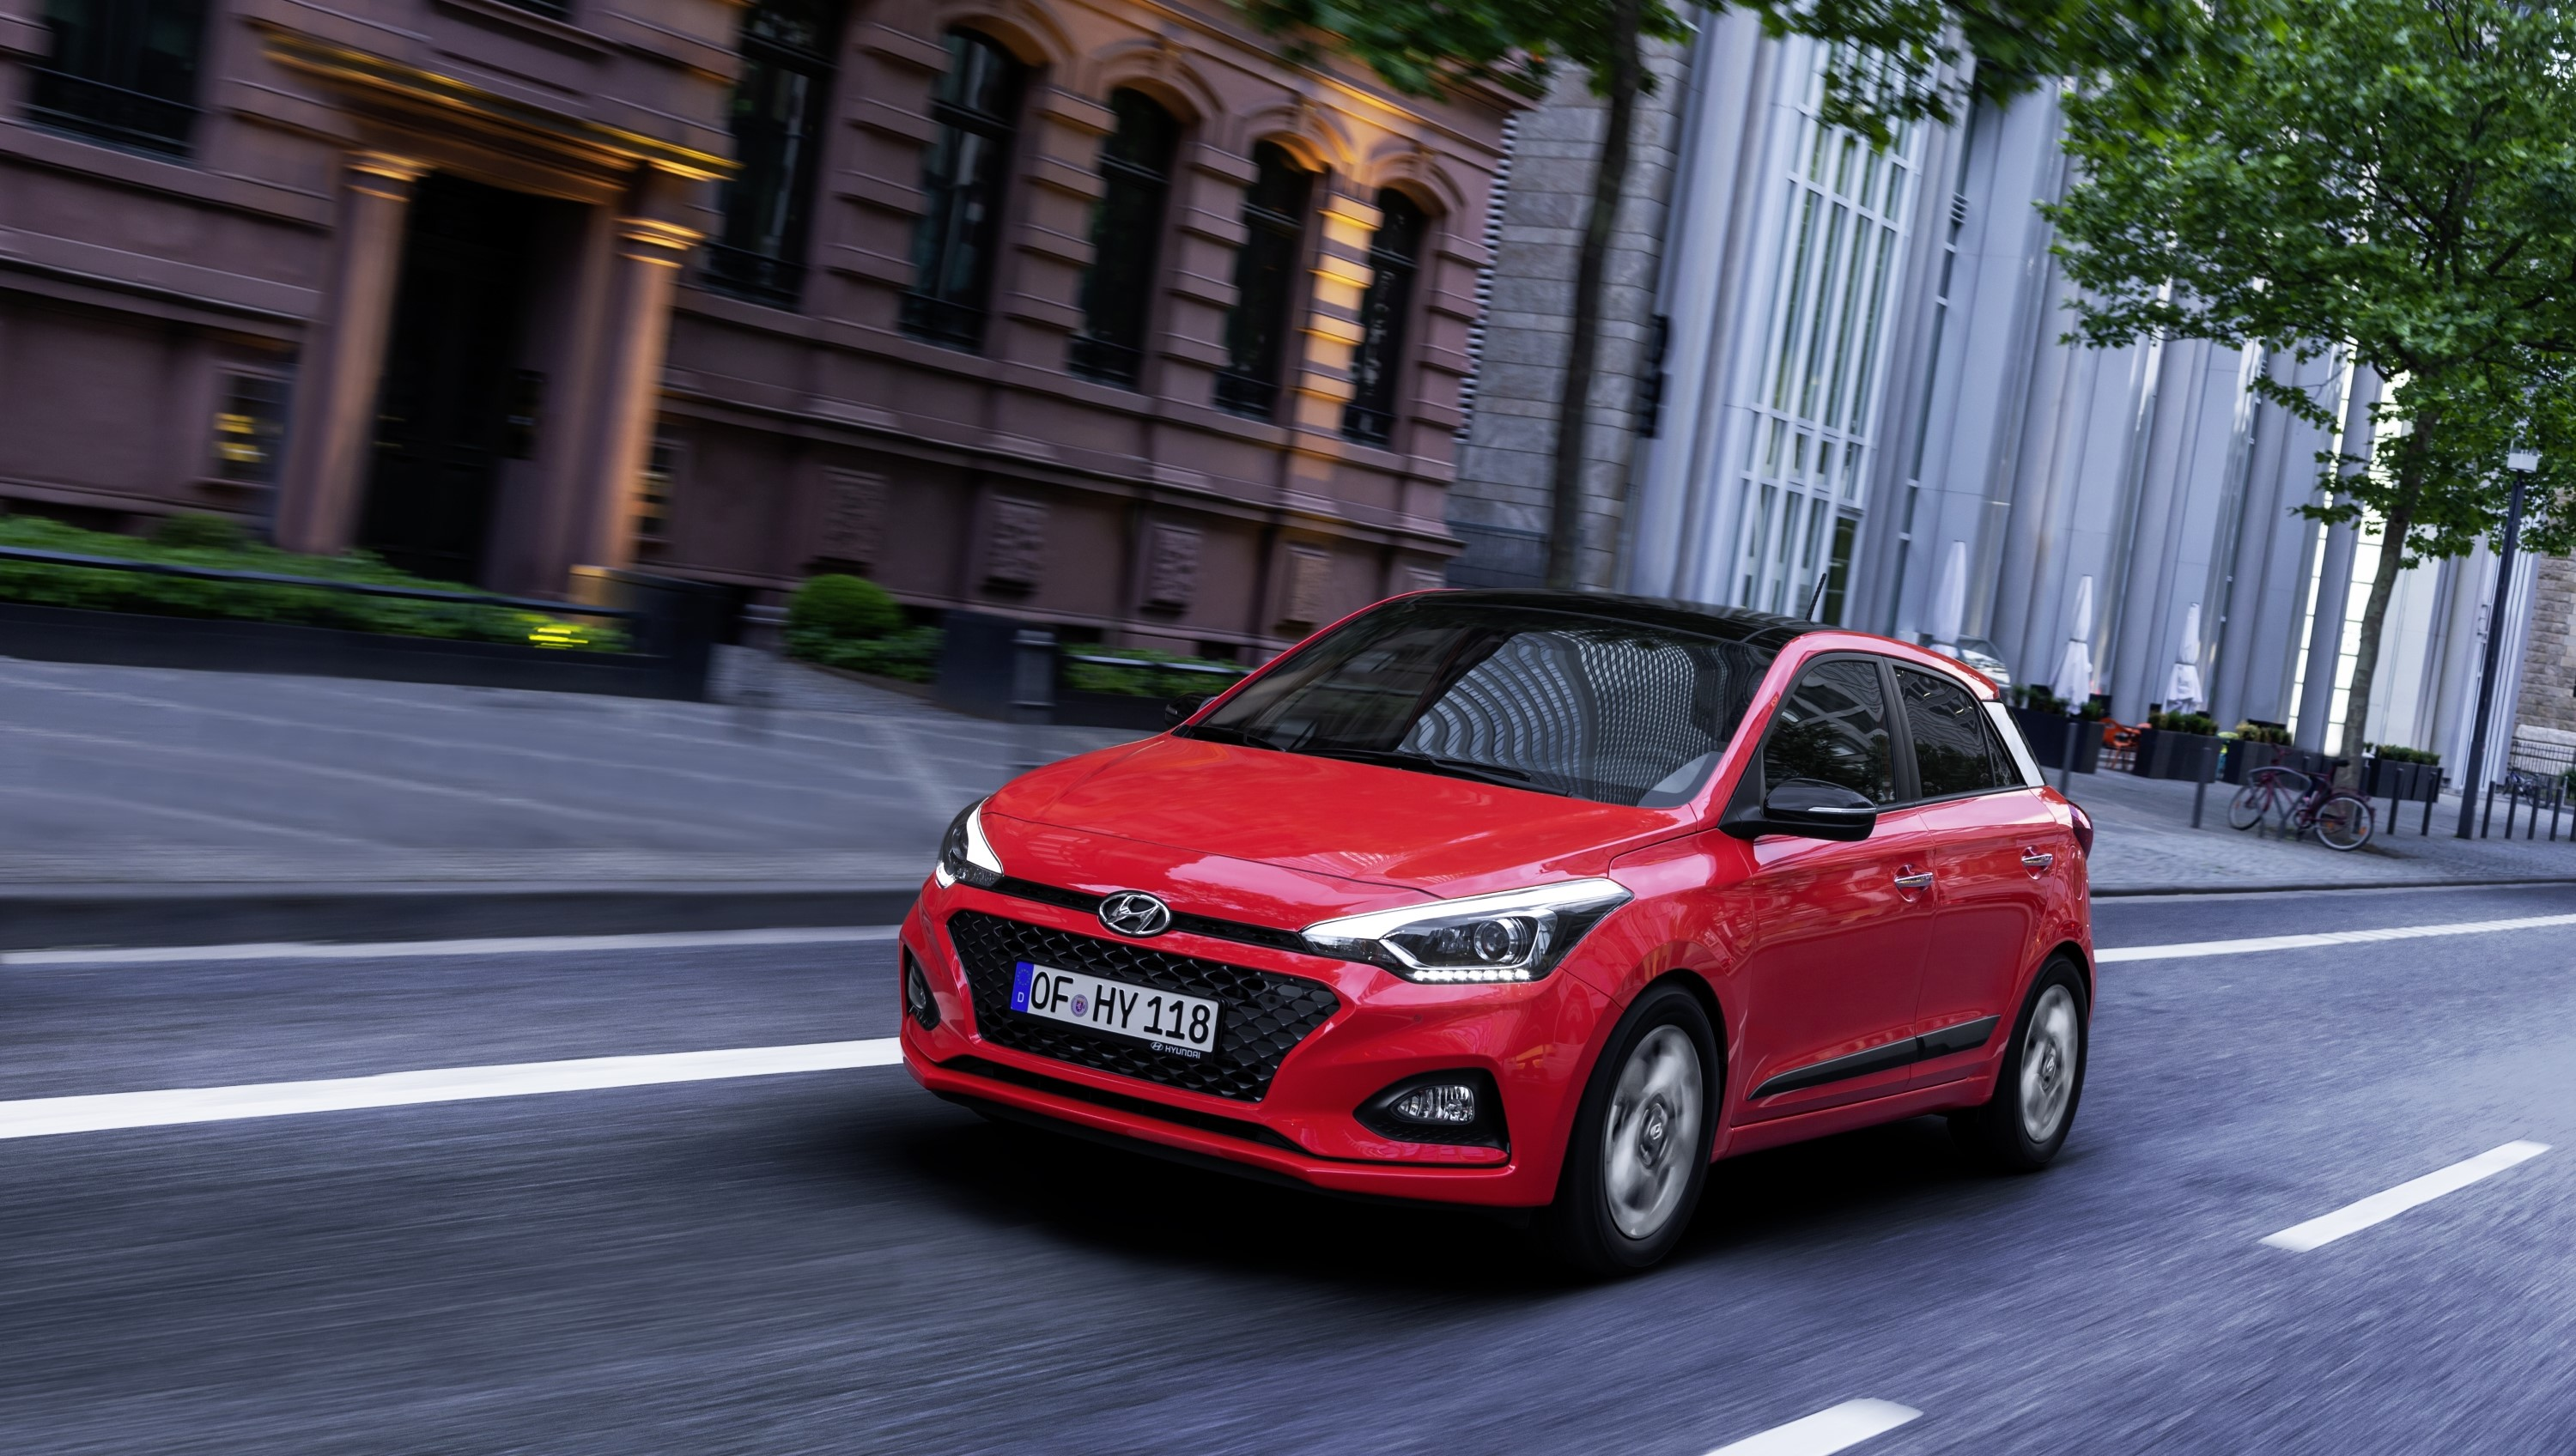 Car In German >> Hyundai I20 Rated Best Compact Car In Germany S Auto Bild